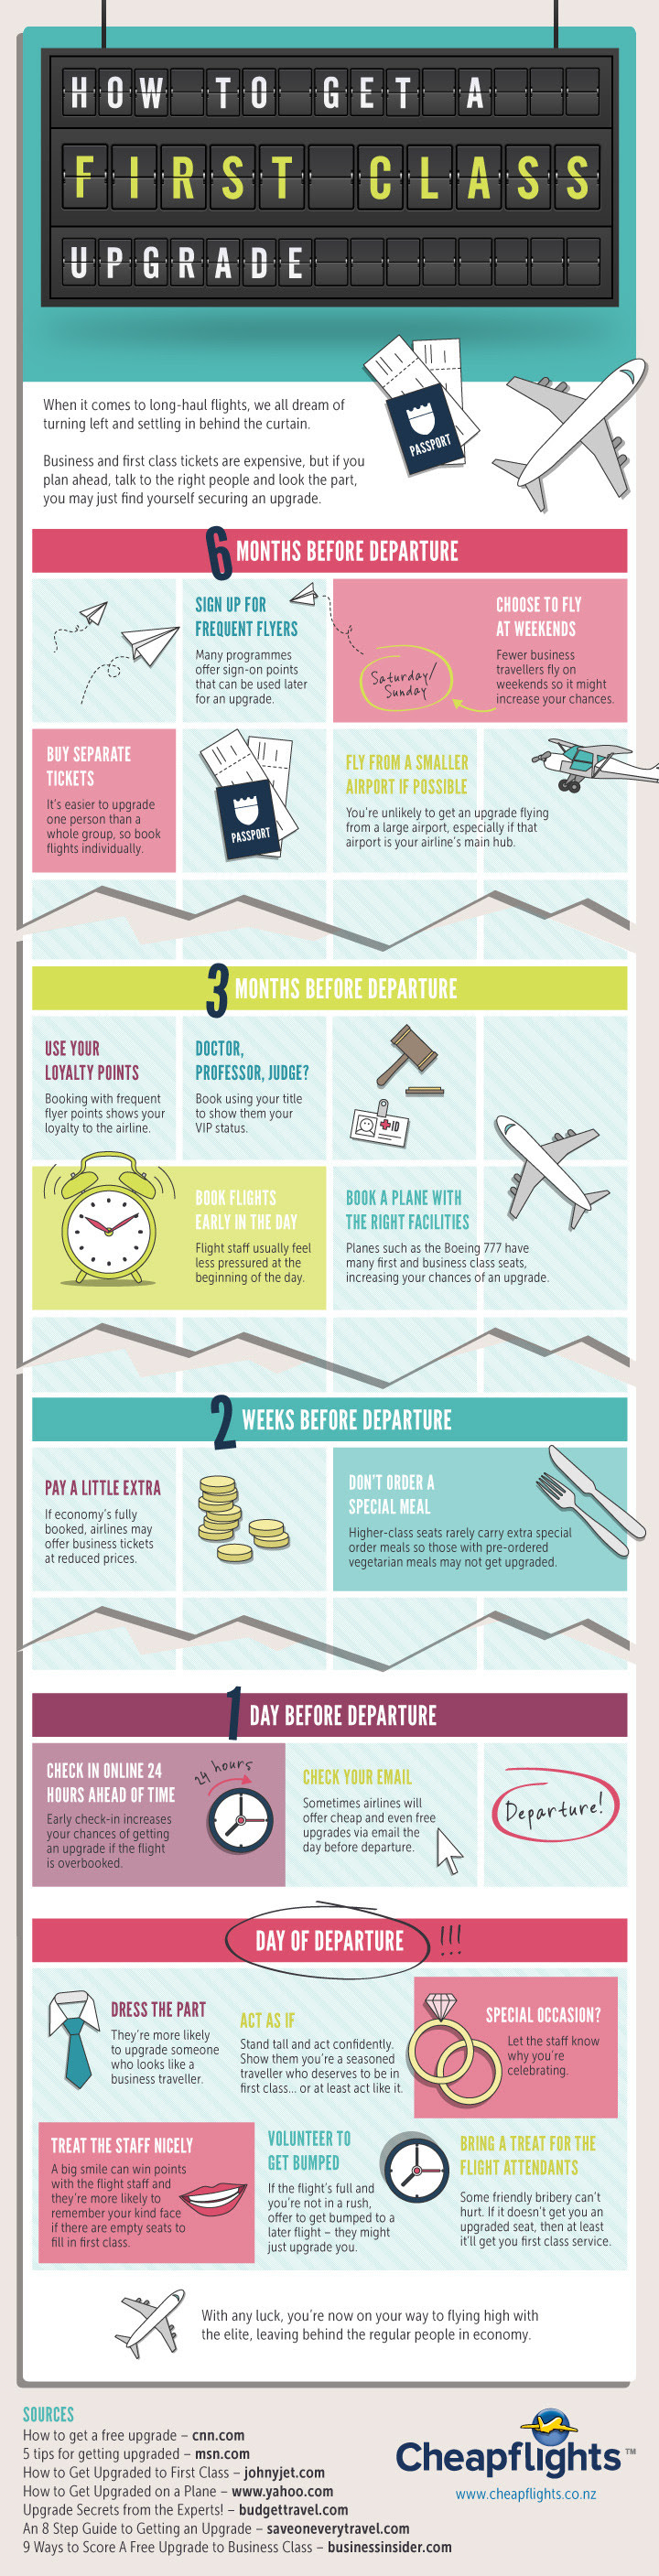 Infographic: How To Get a First Class Upgrade